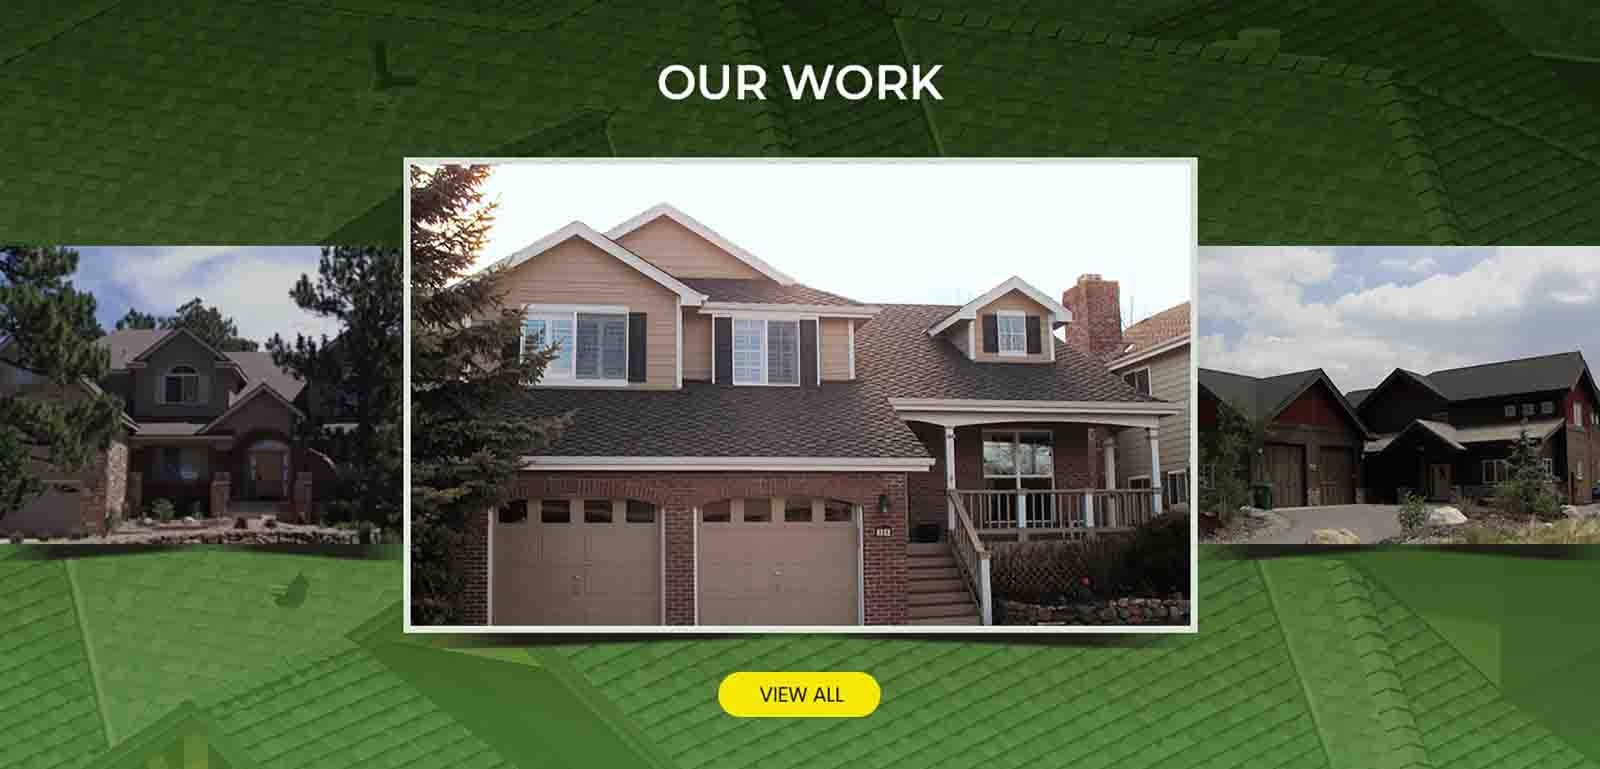 Top Roofing Company In Denver Co Roofing Contractors